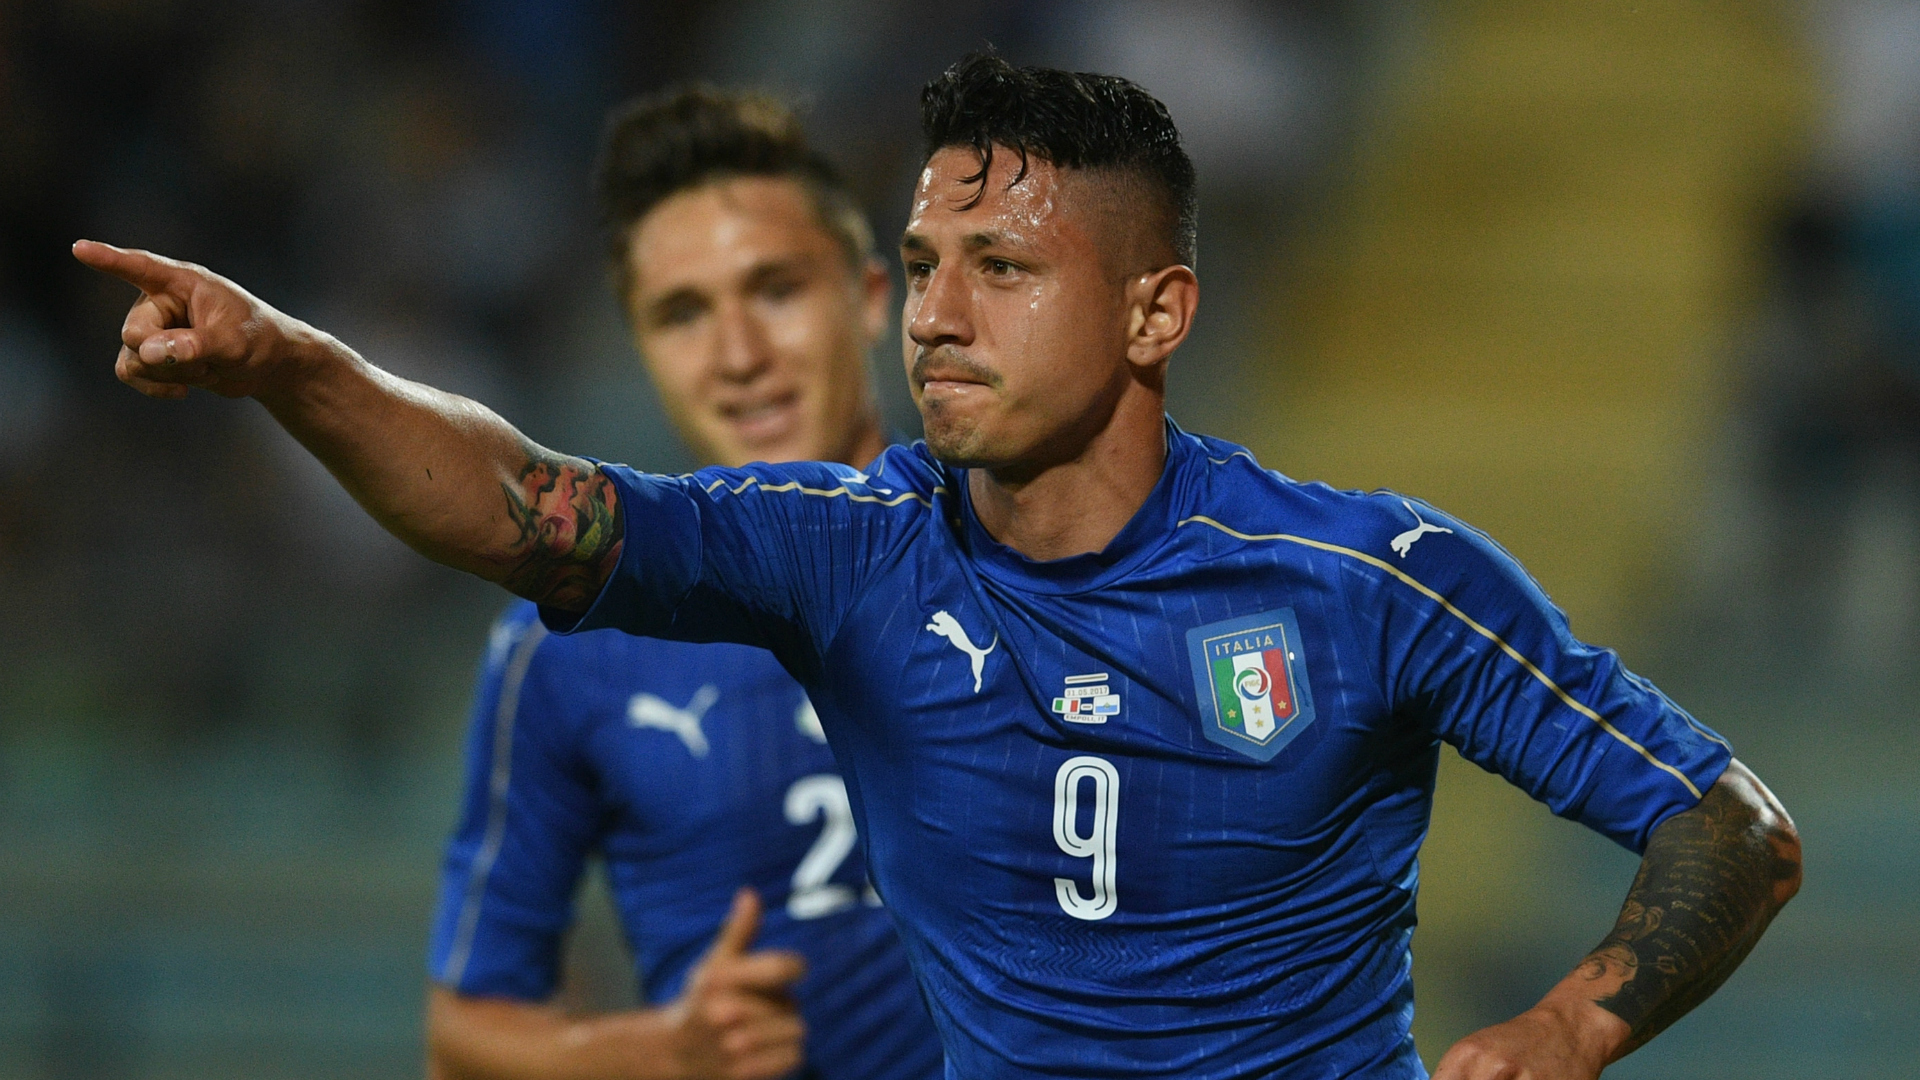 Gareca no descarta convocatoria de Gianluca Lapadula